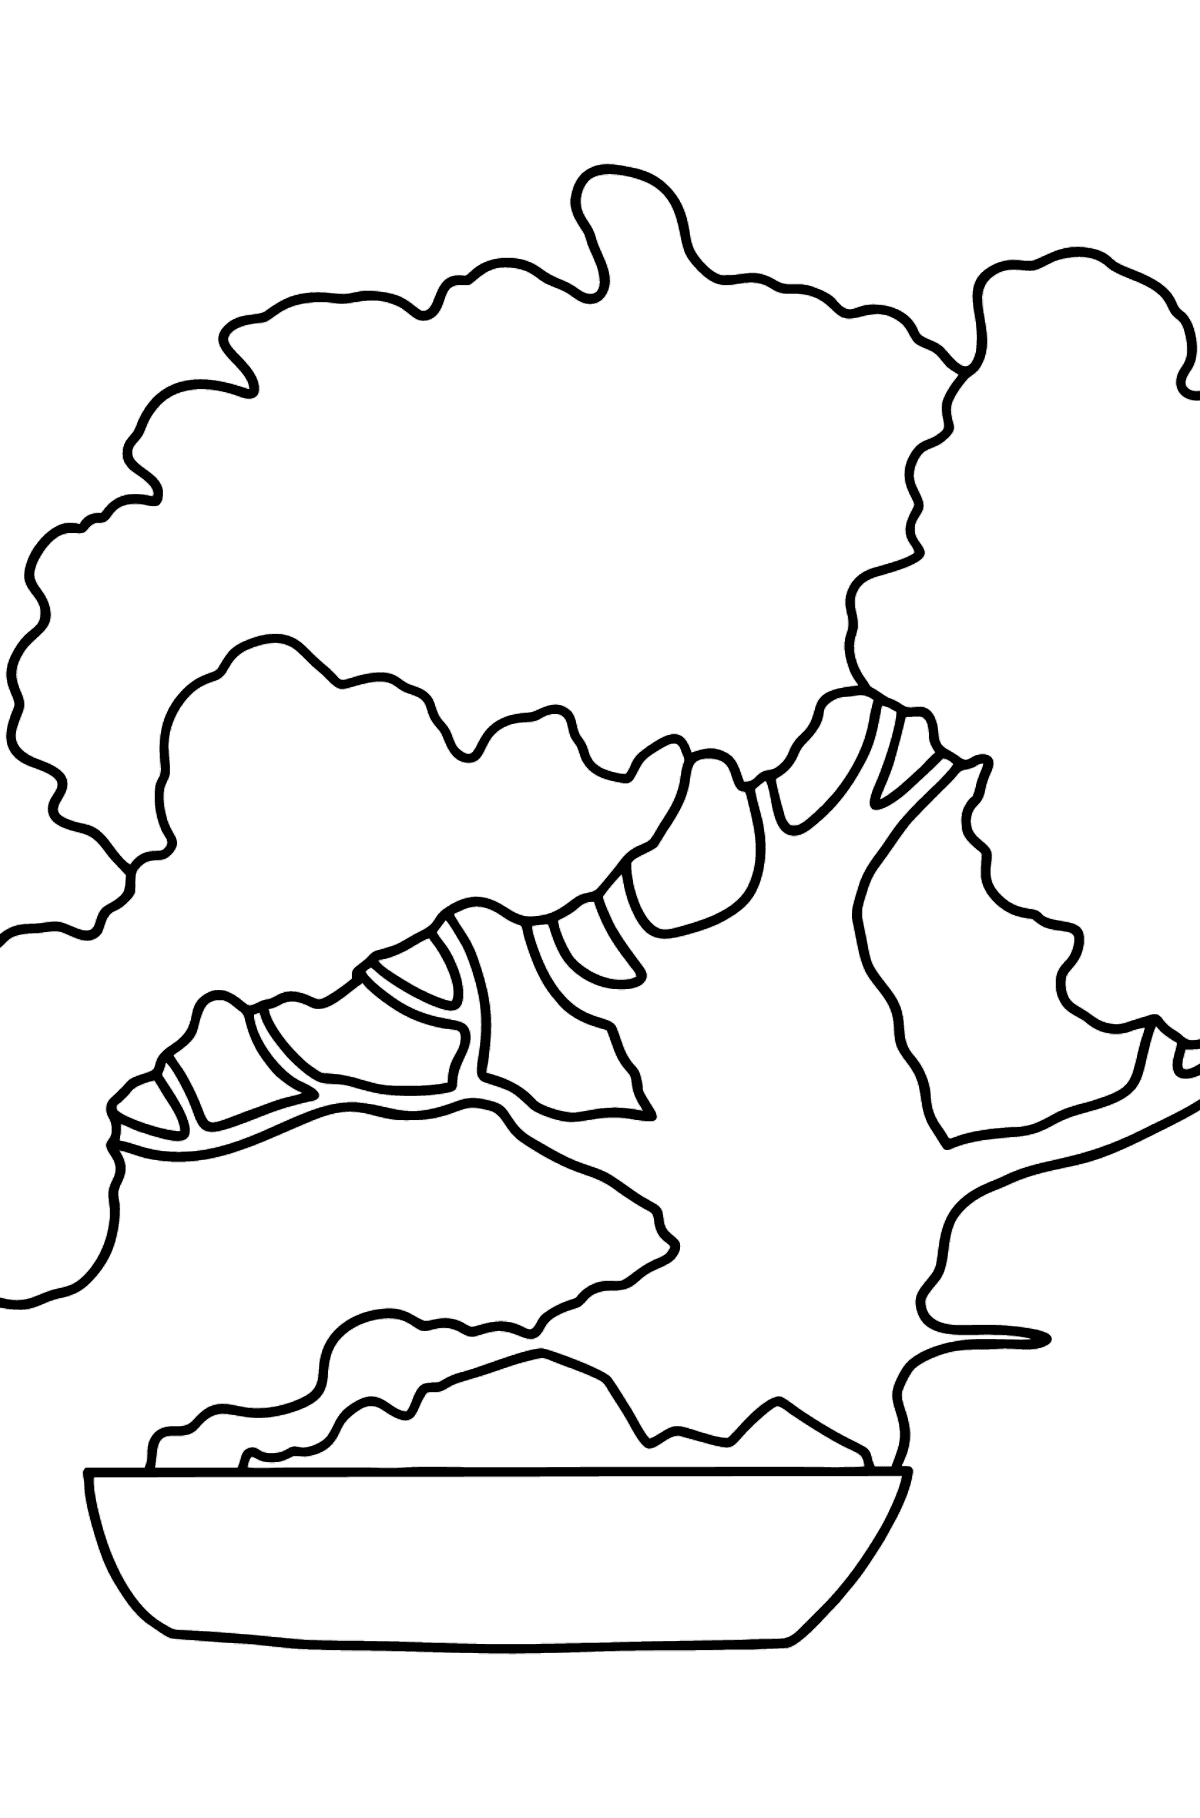 Bonsai coloring page - Coloring Pages for Kids